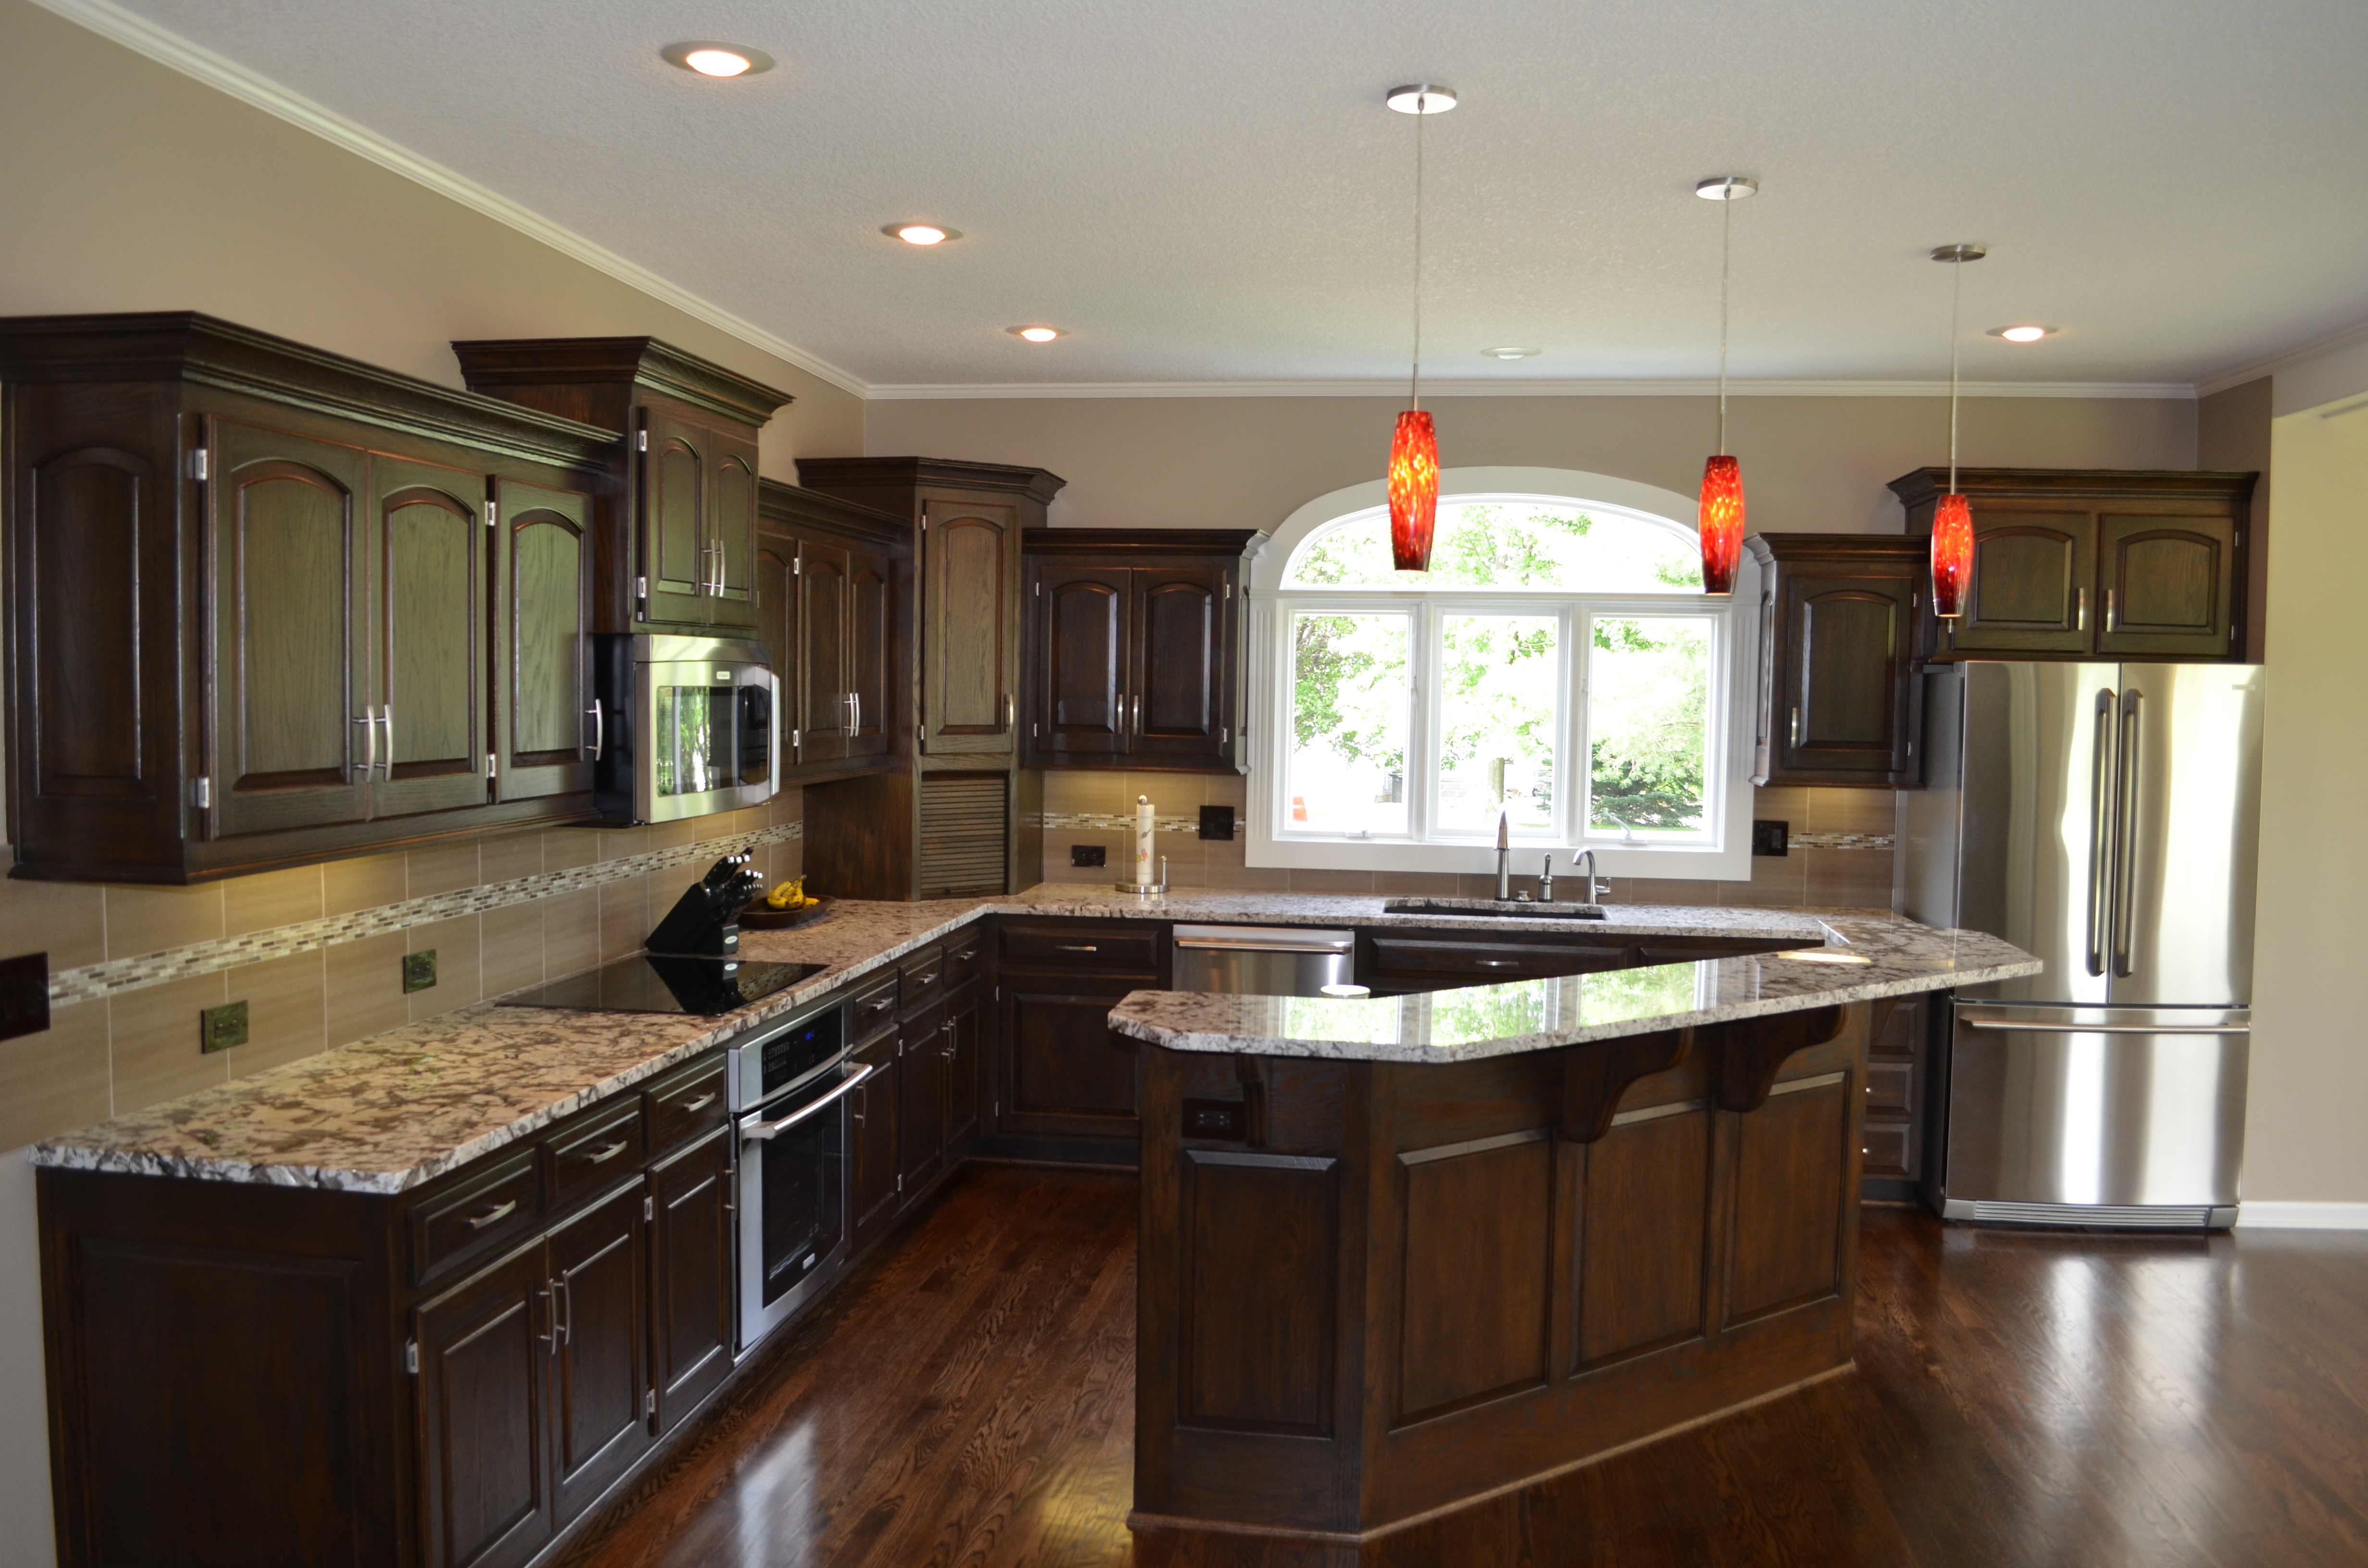 Kitchen Remodeling |Kitchen Design| Kansas CityRemodeling ... on Kitchen Remodeling Ideas  id=37549